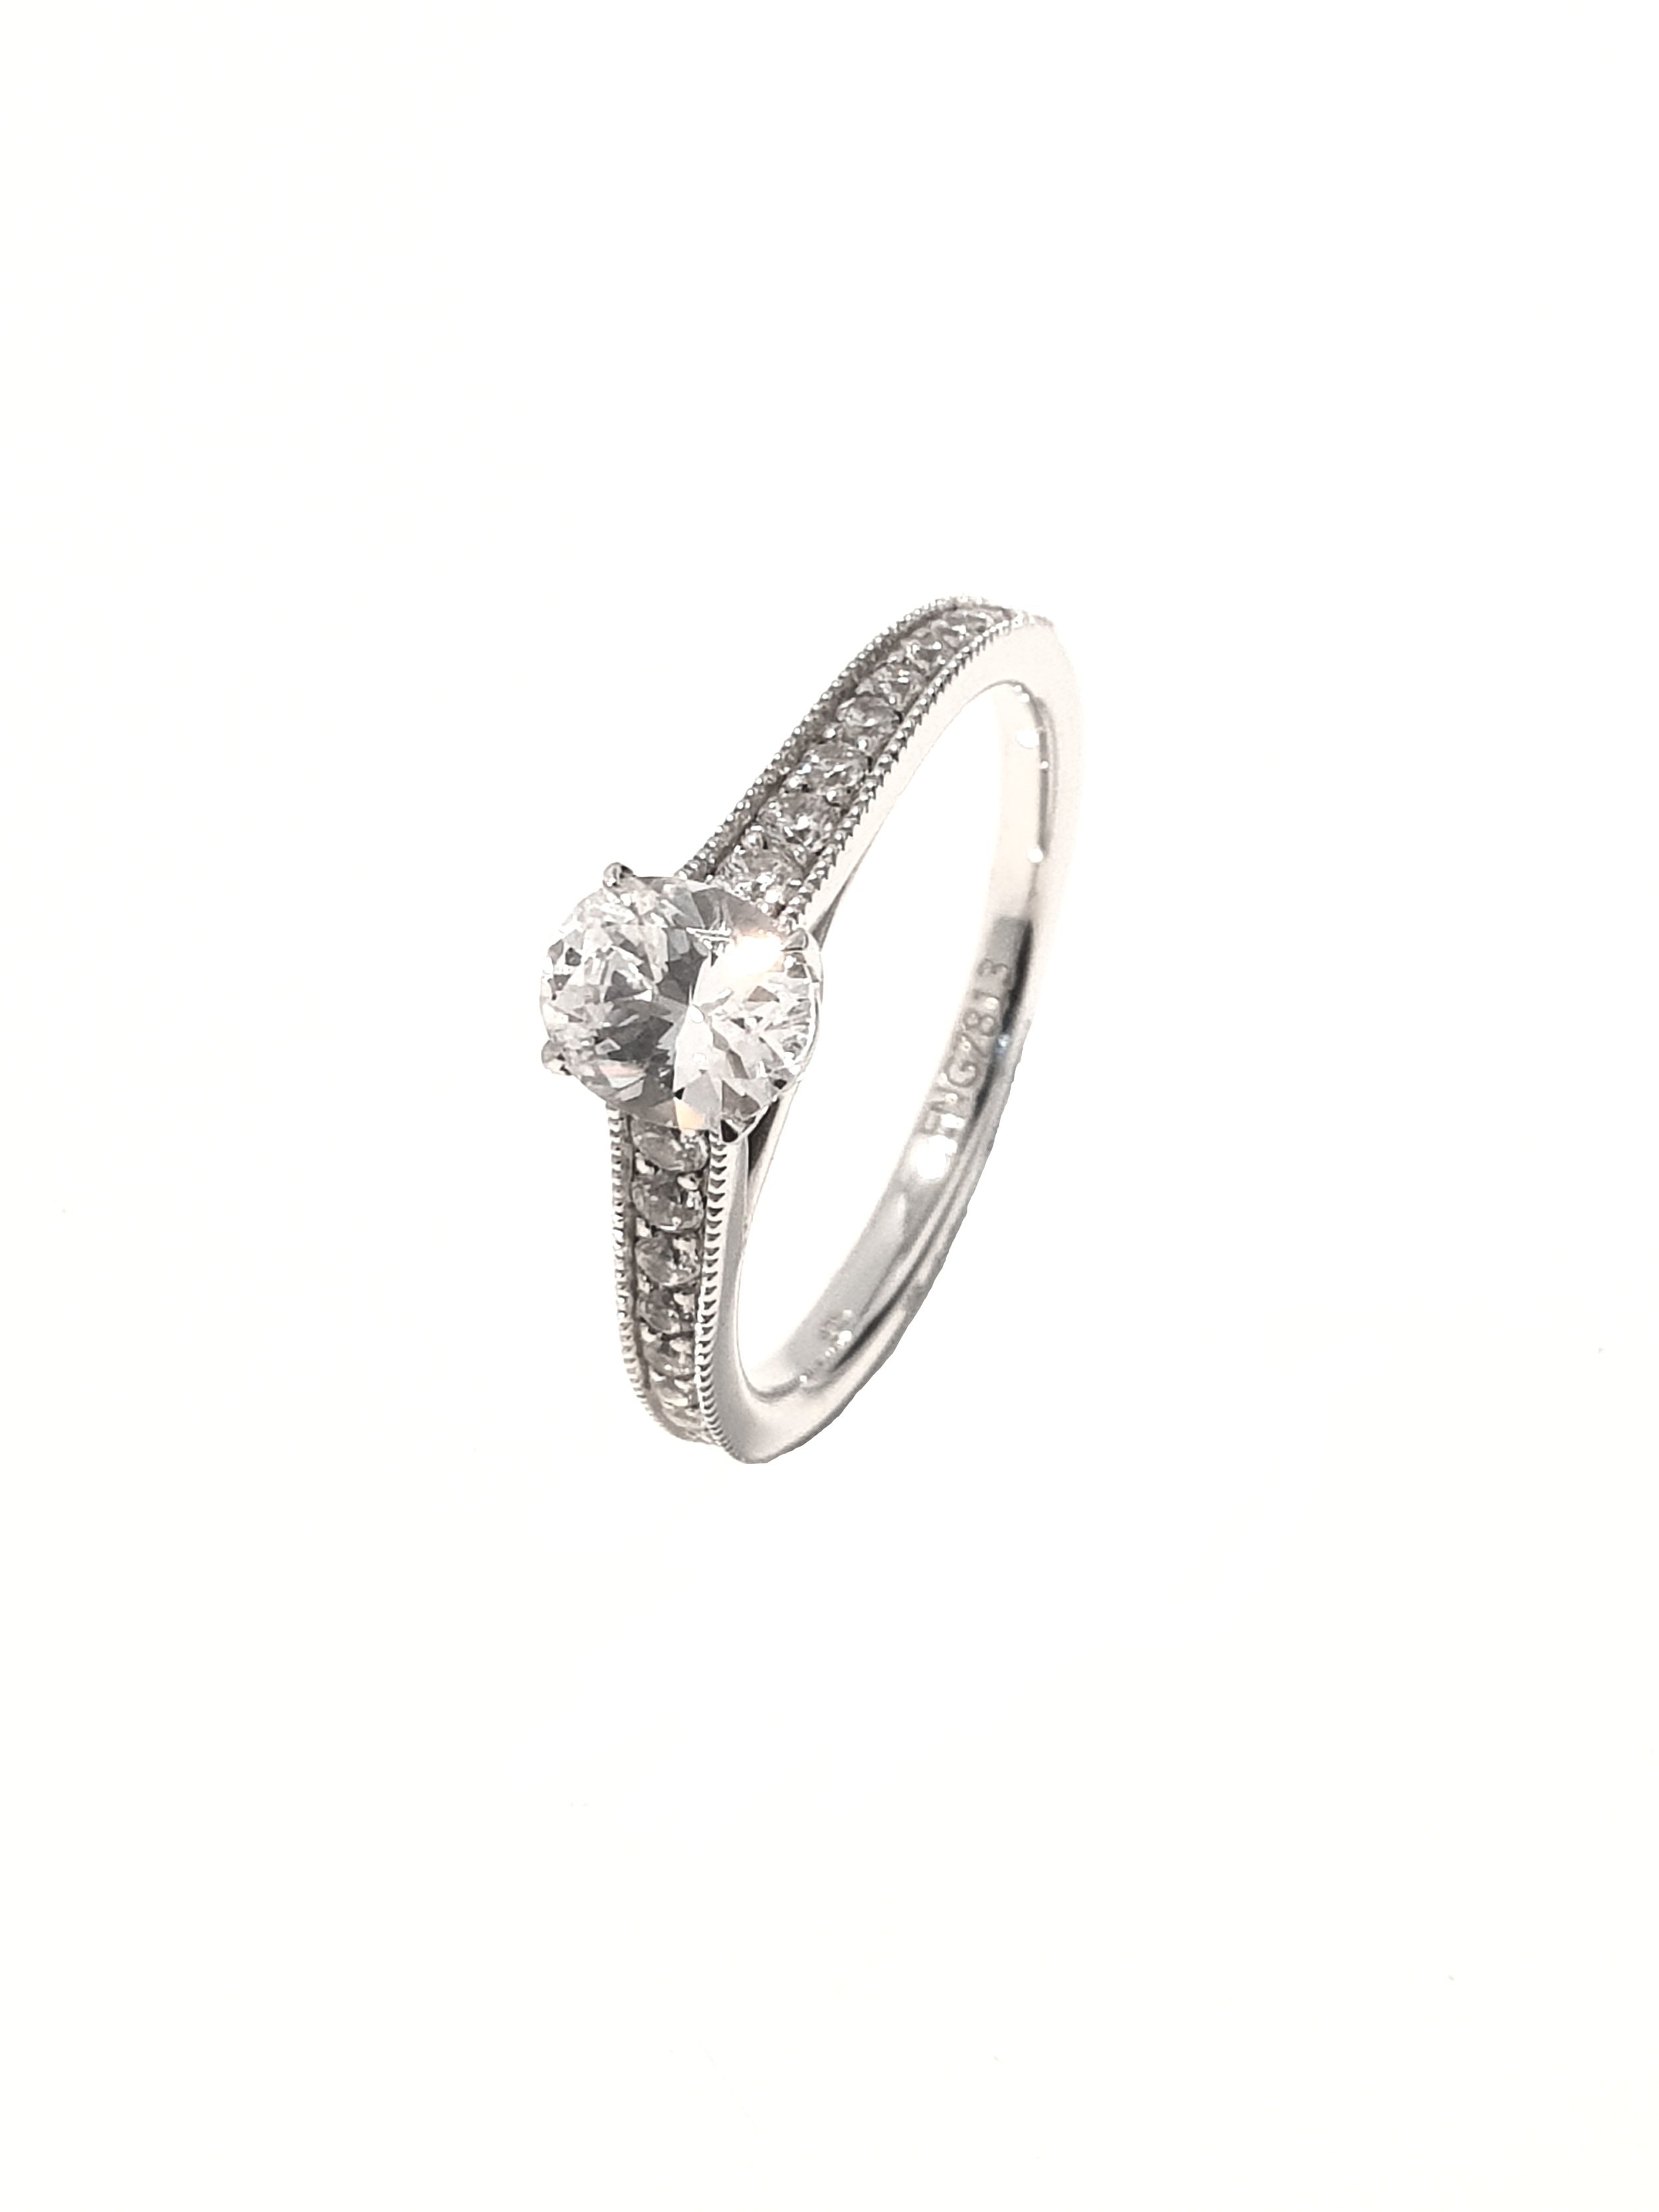 Raphael Collection, Oval 4 Claw Diamond Set Ring  .75ct, G, SI1 + .25ct shoulders.  Stock Code: Z1419  18ct White Gold: £2850  Platinum: £3050  Made To Order, approx 3 weeks.